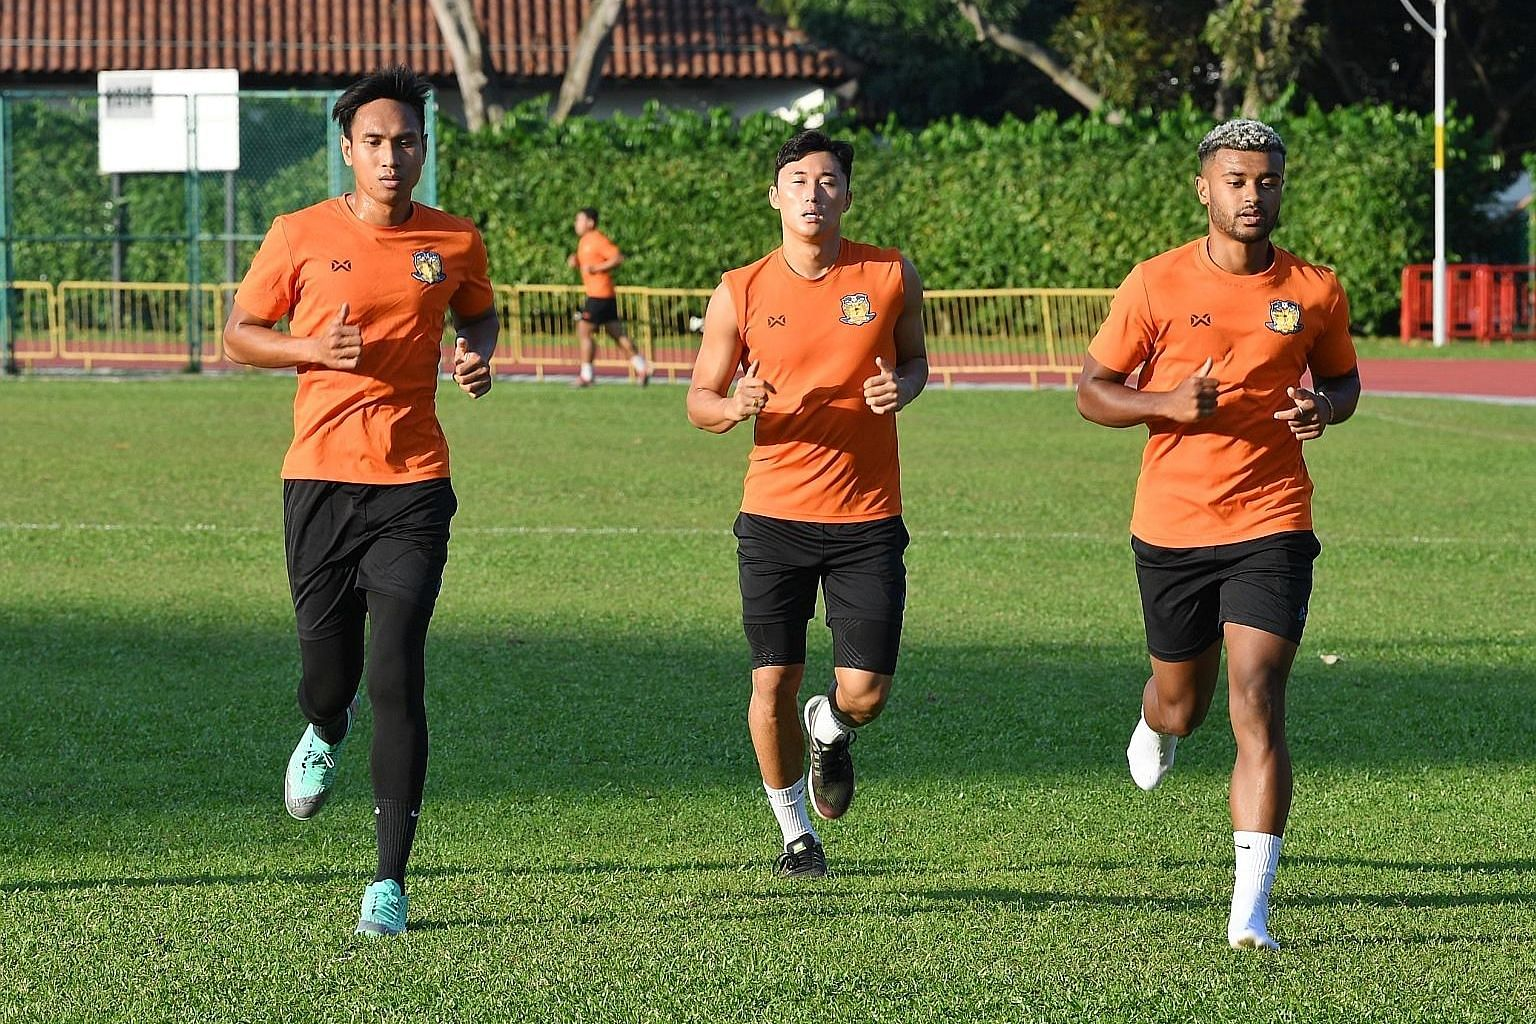 Hougang United players (from far left) Afiq Yunos, Kong Ho-won and Paulin Mbaye training on Thursday ahead of today's match against Albirex at Jurong East.